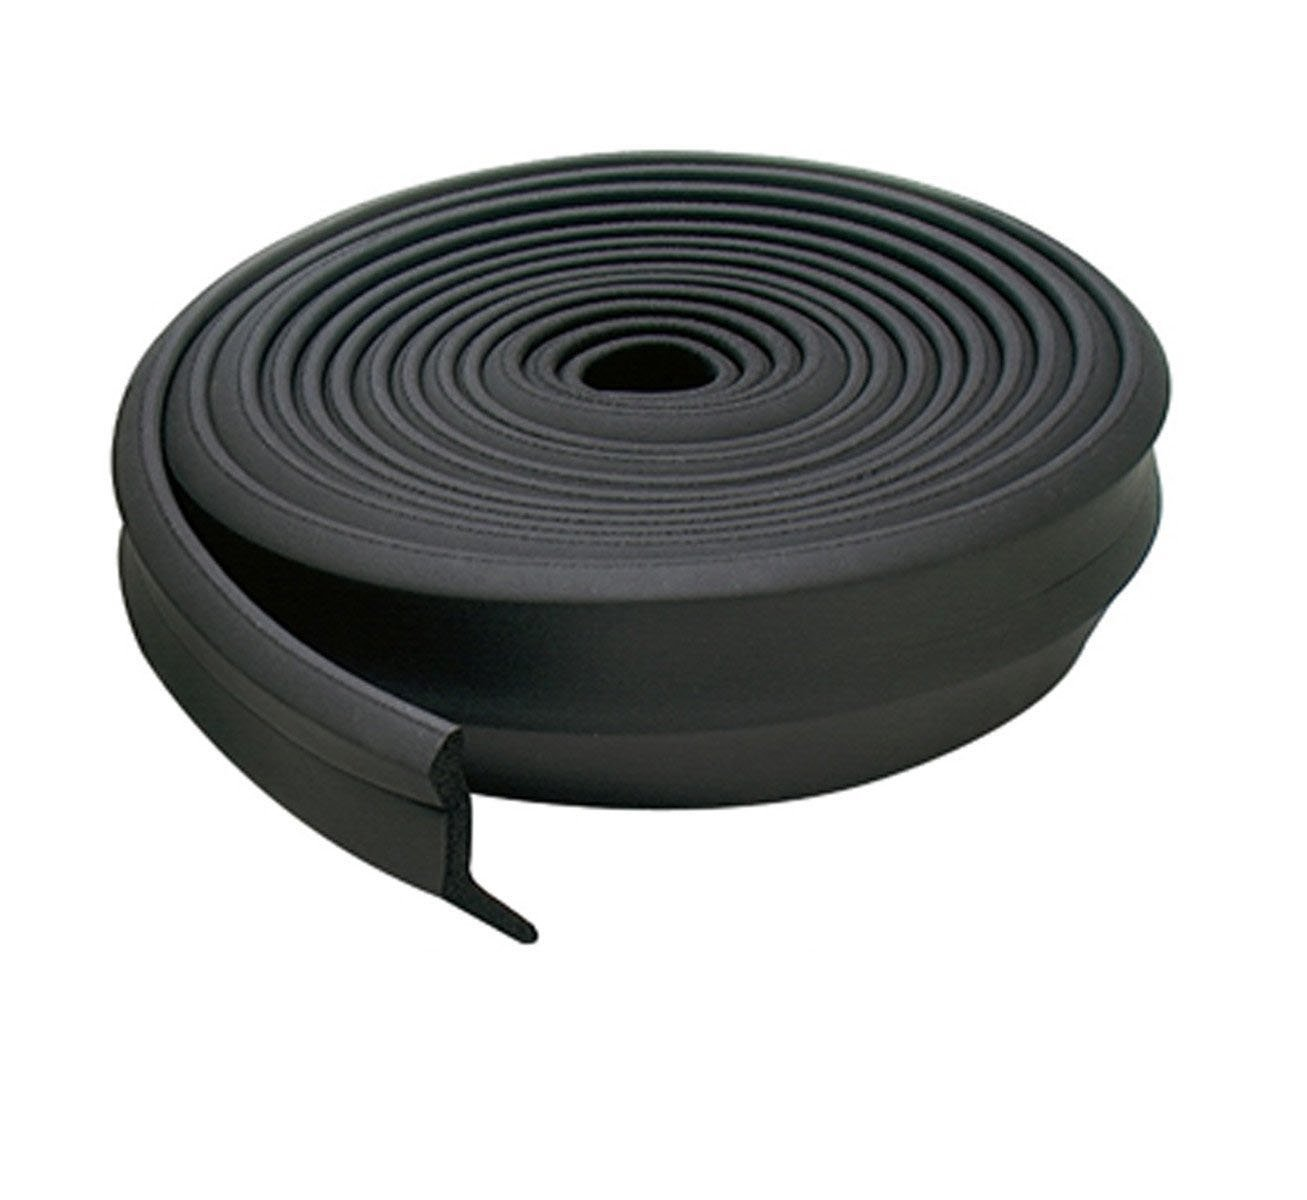 MD Building Products 44823 2-Inch by 100-Feet Rubber Garage Door Bottom